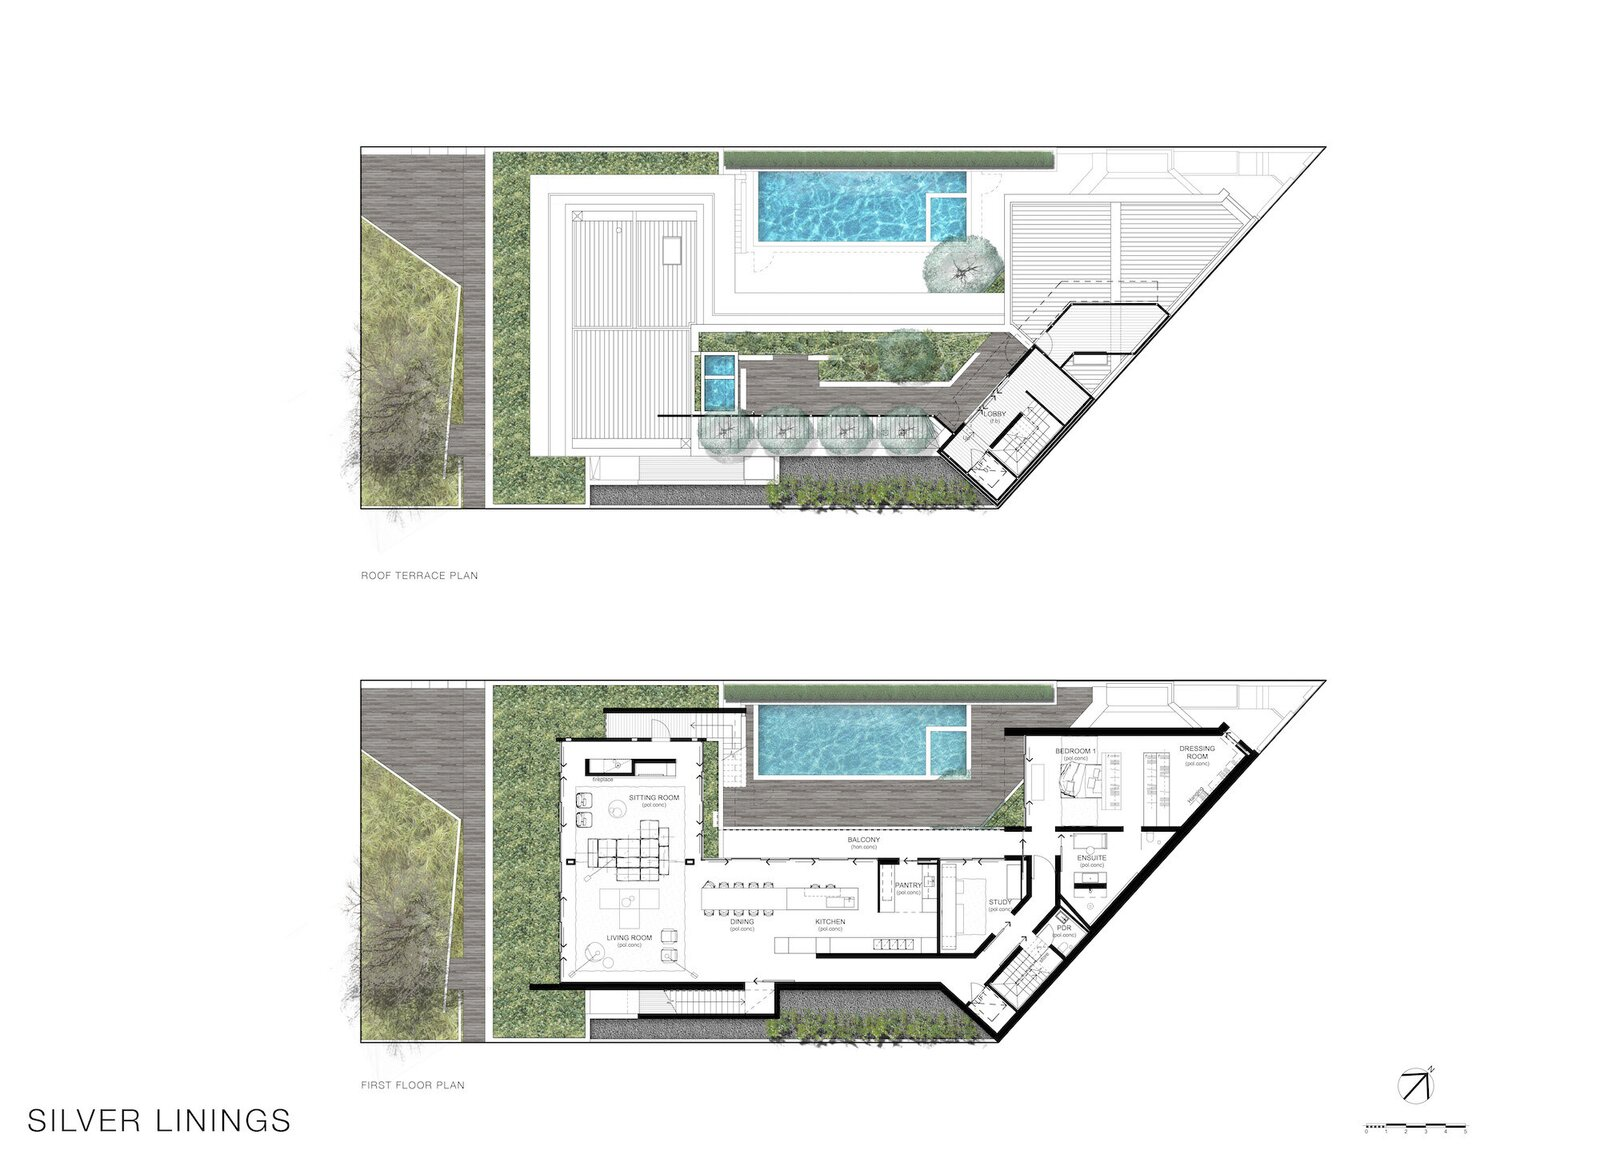 Second-story and roof terrace plans for Silver Linings by Rachcoff Vella Architecture